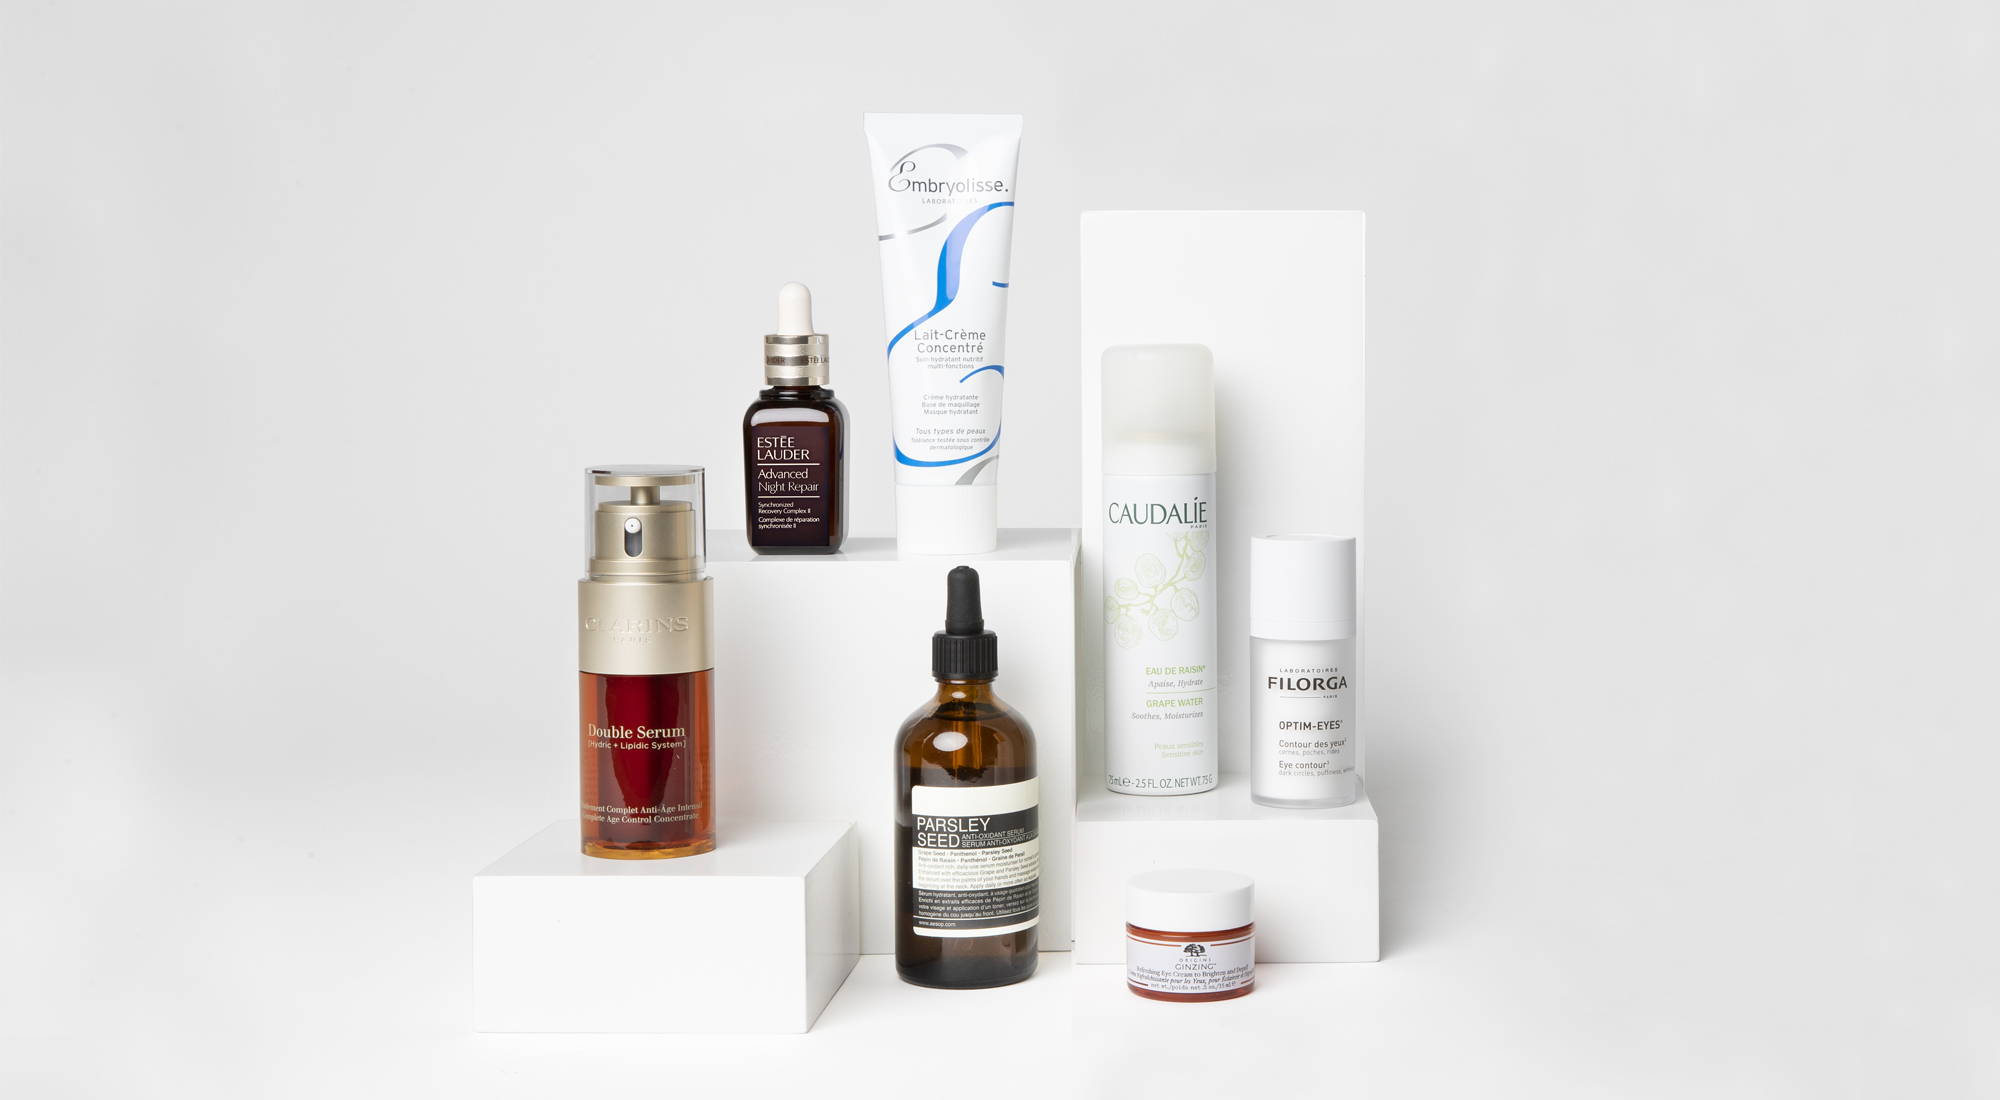 Discover discount skin care products from top luxury